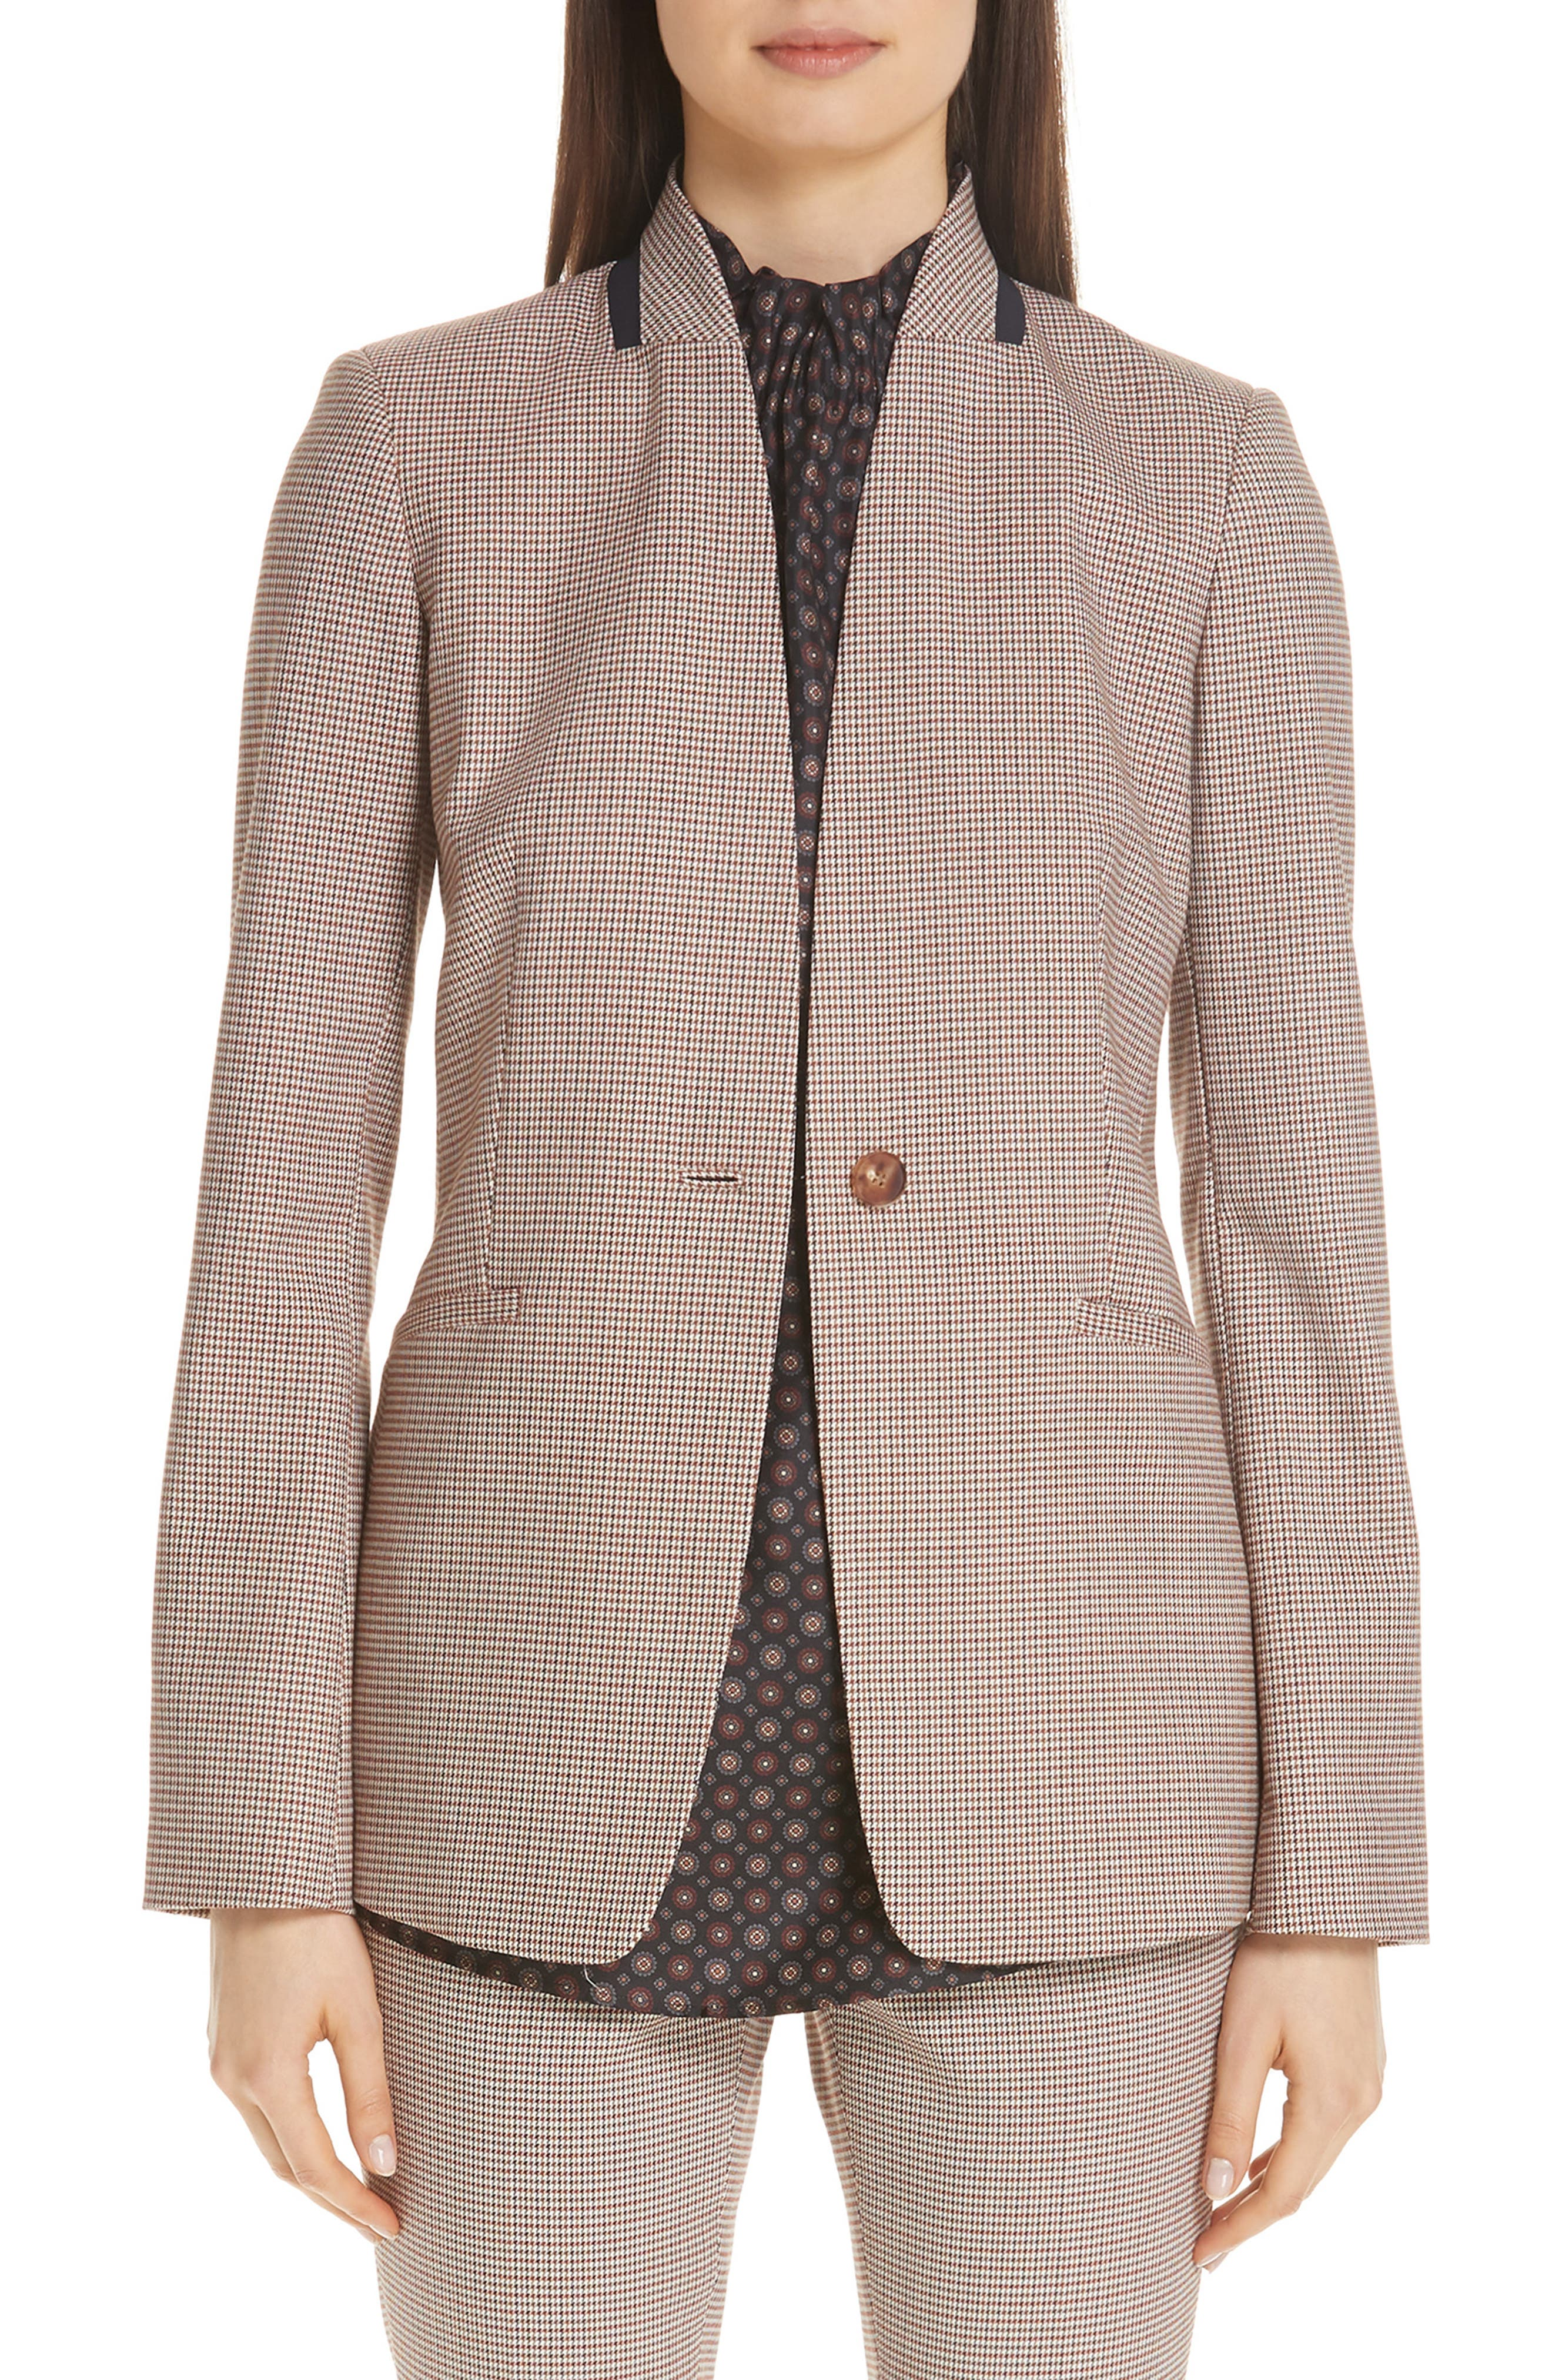 LAFAYETTE 148 NEW YORK Darcy Plaid Jacket, Main, color, 600